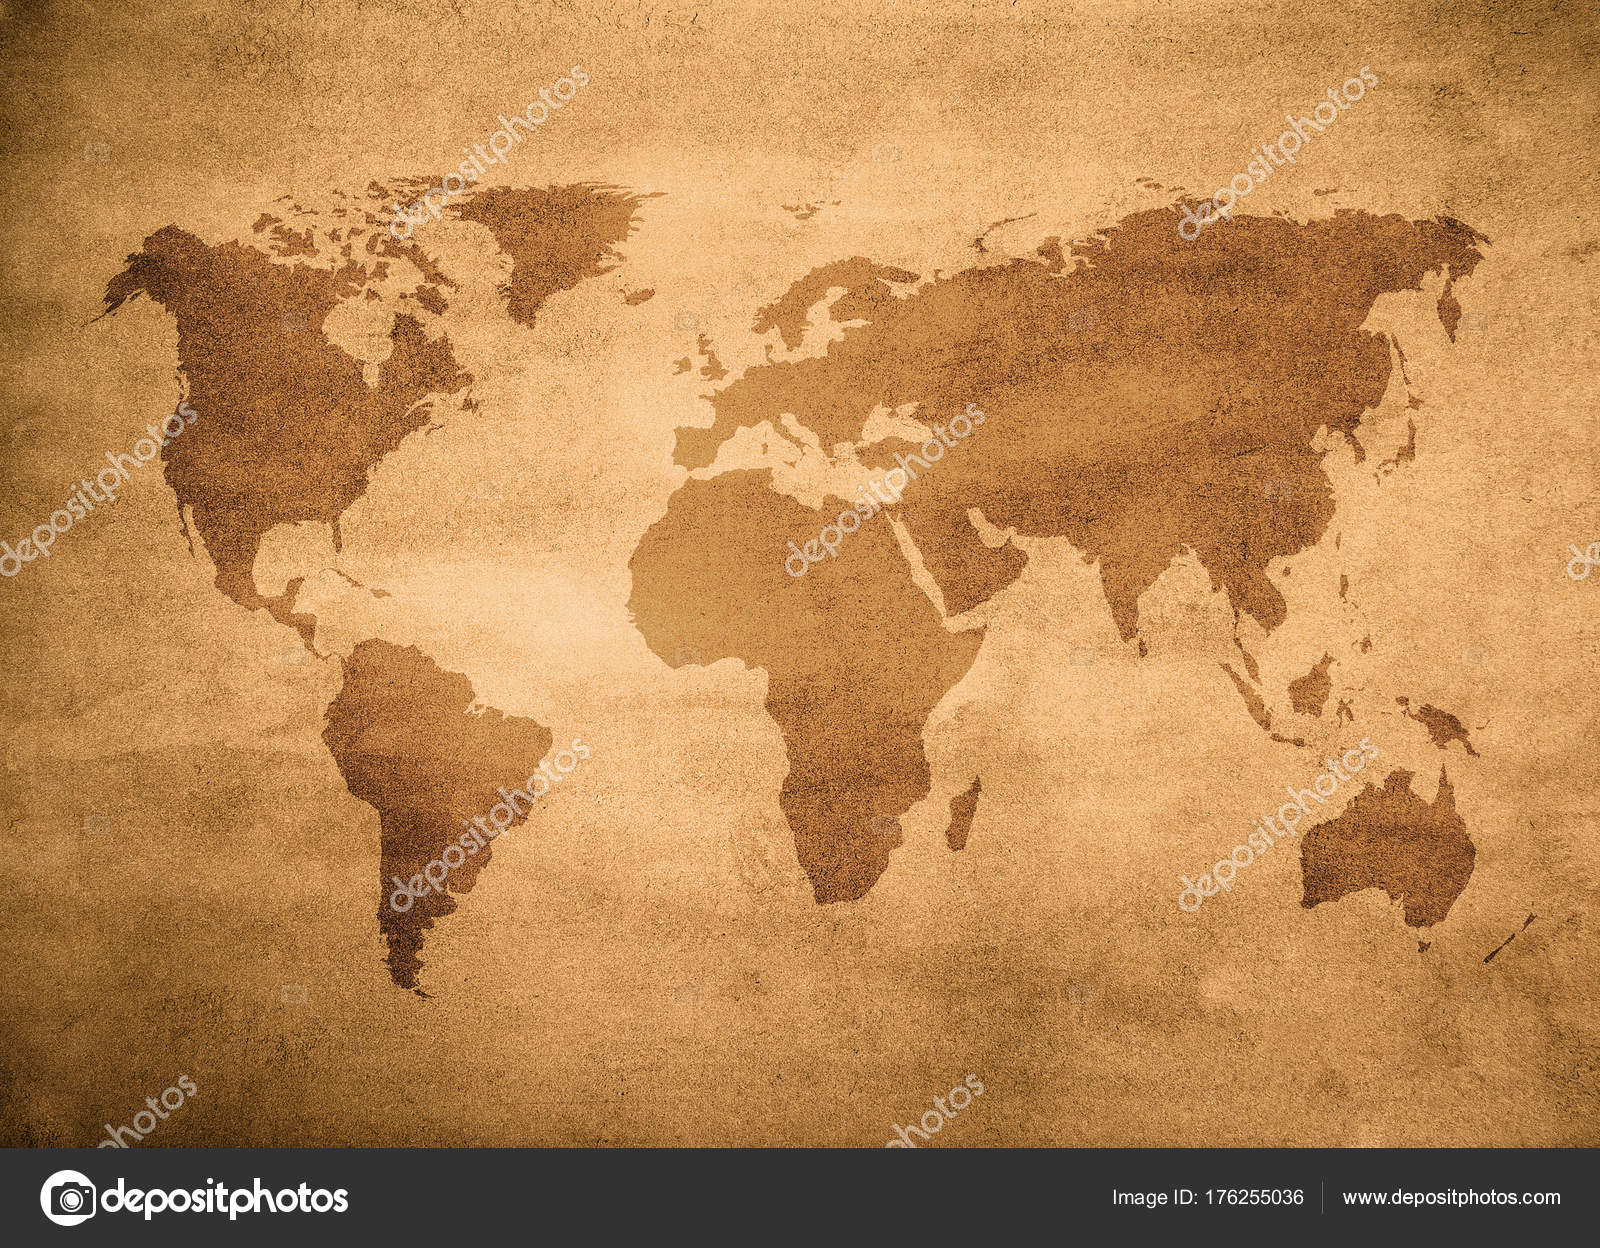 Aged map world vintage background stock photo javarman 176255036 aged map of world vintage background photo by javarman gumiabroncs Gallery